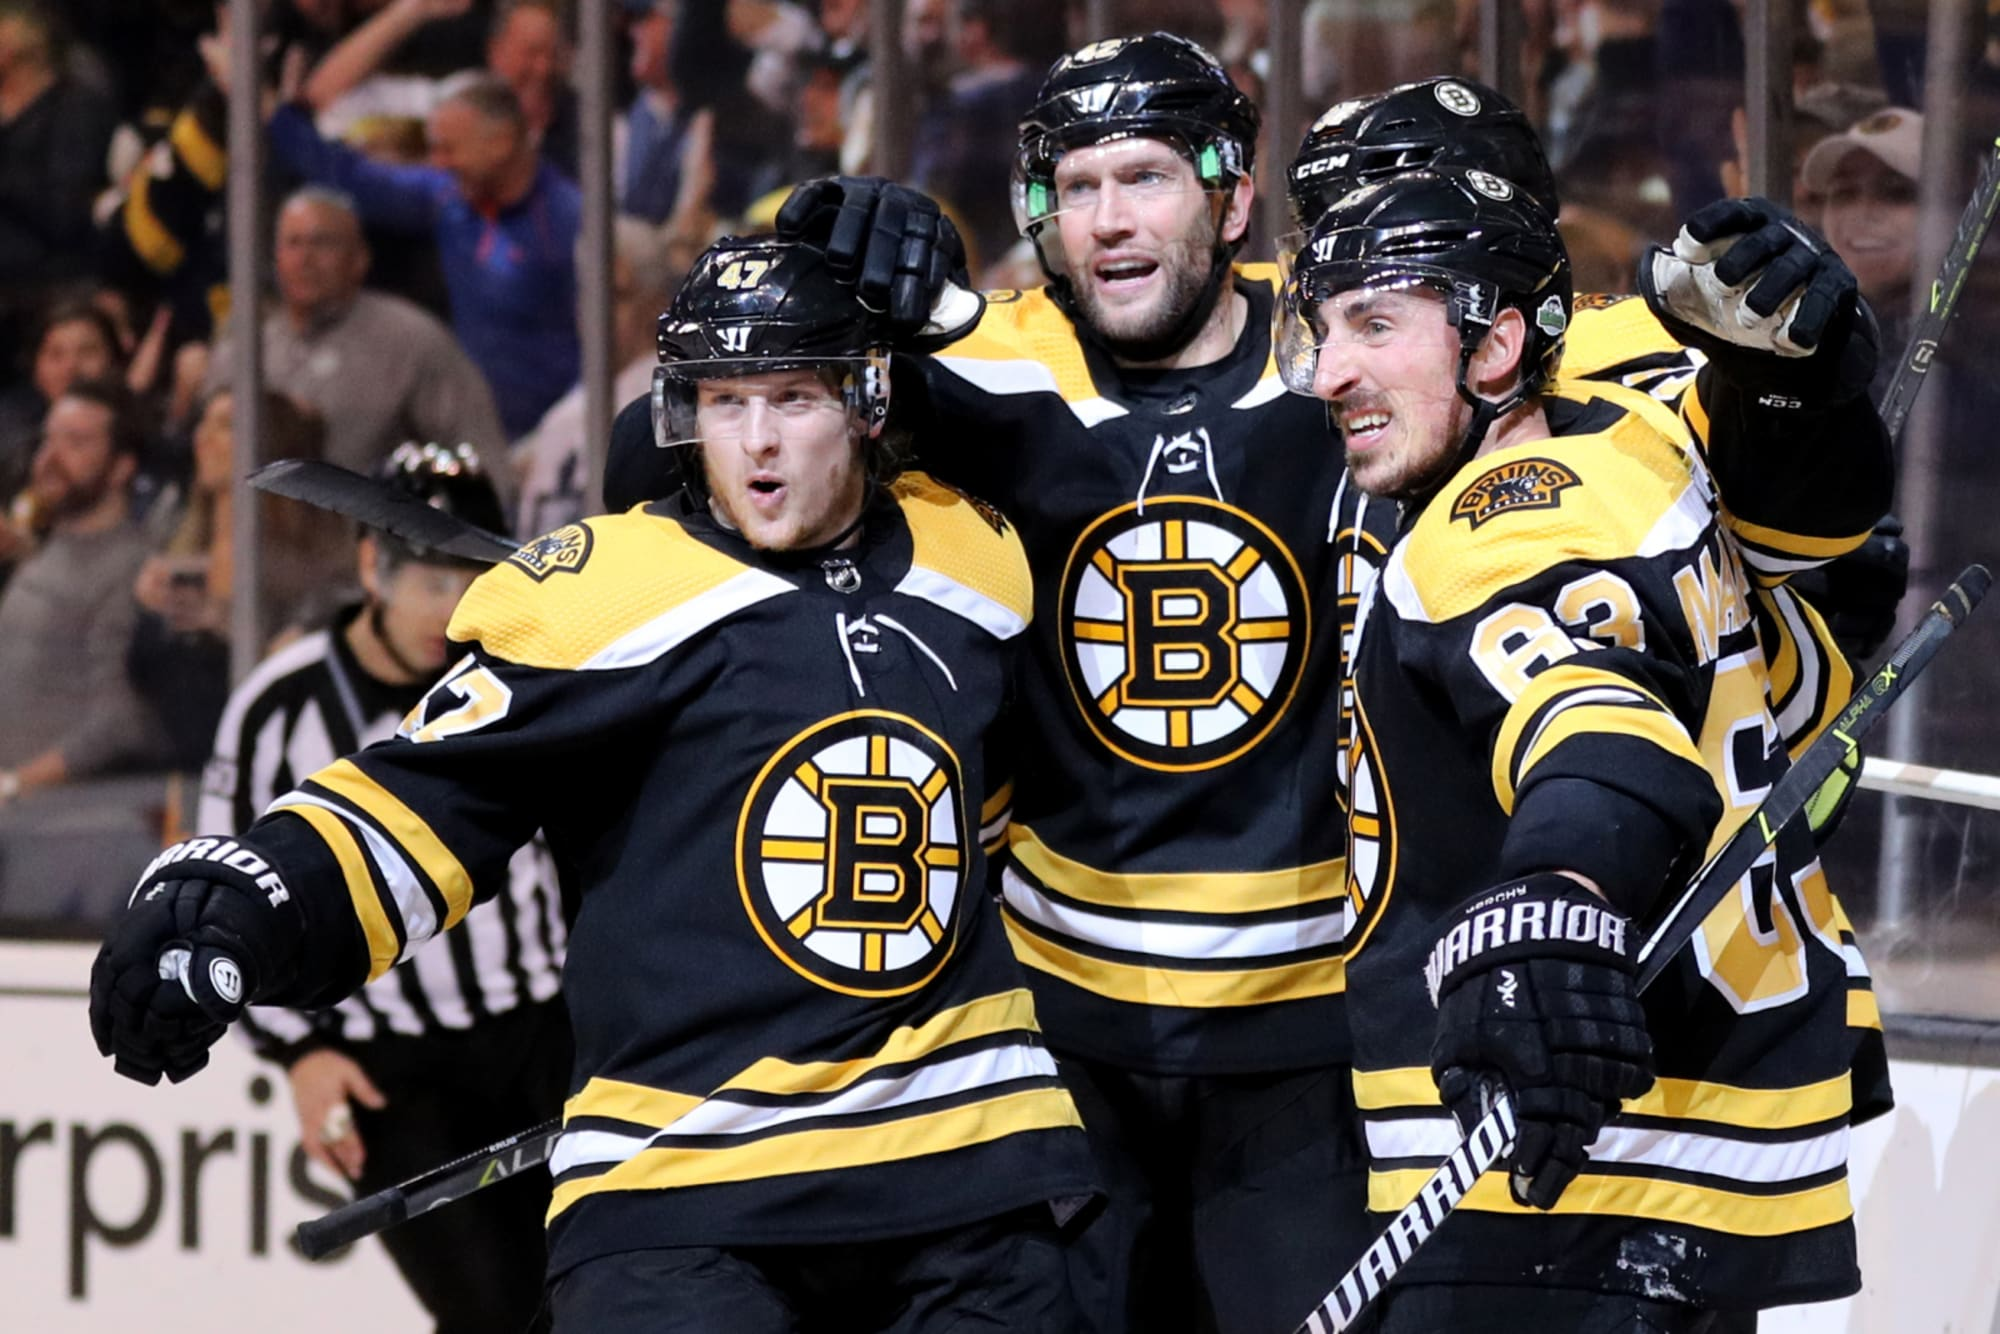 Bruins Vs Maple Leafs Game 7 Full Highlights Final Score And More